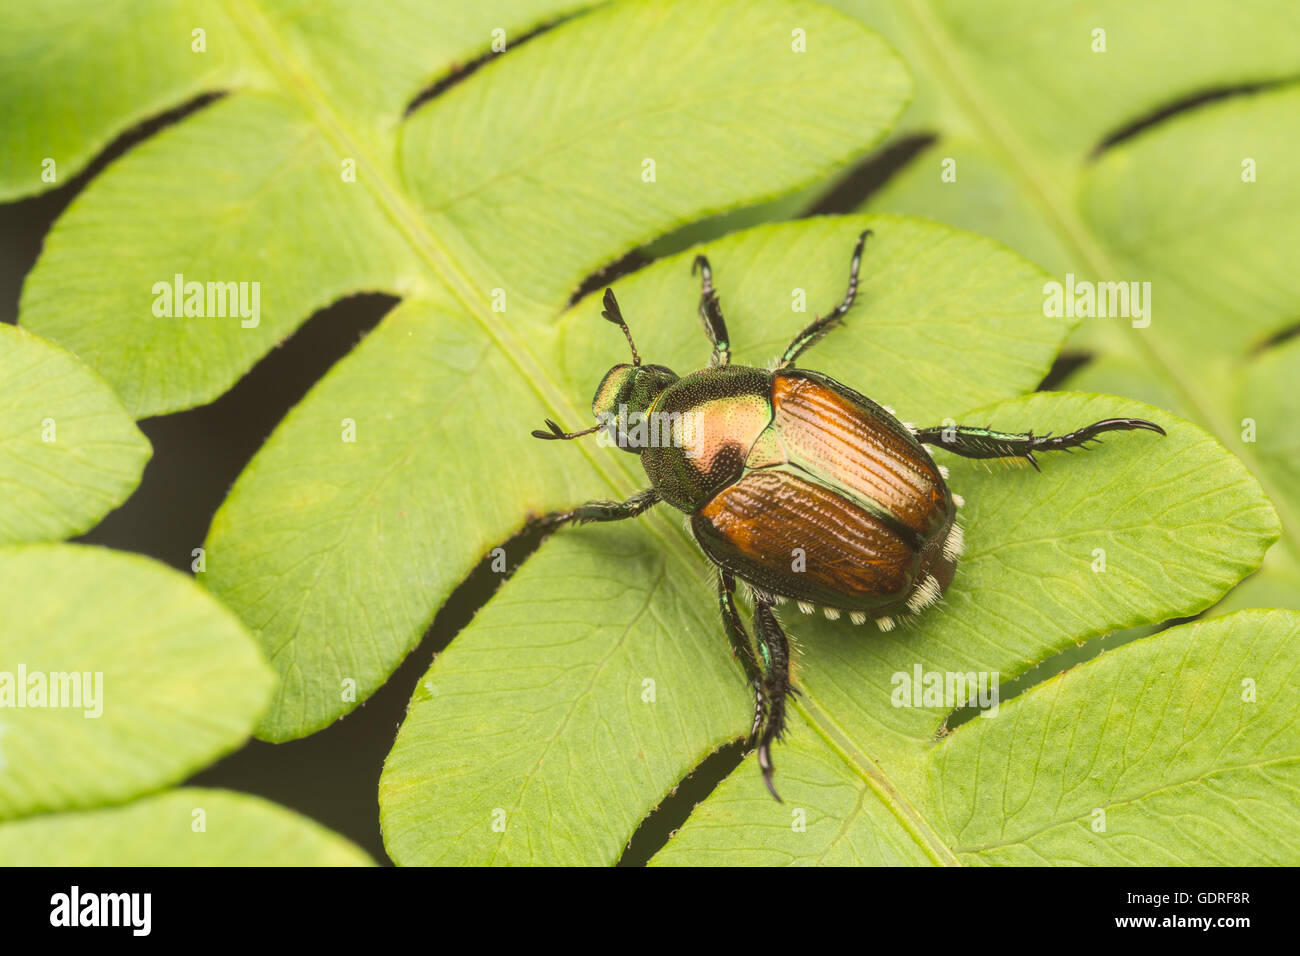 A Japanese Beetle (Popillia japonica) perches on a fern leaf. - Stock Image